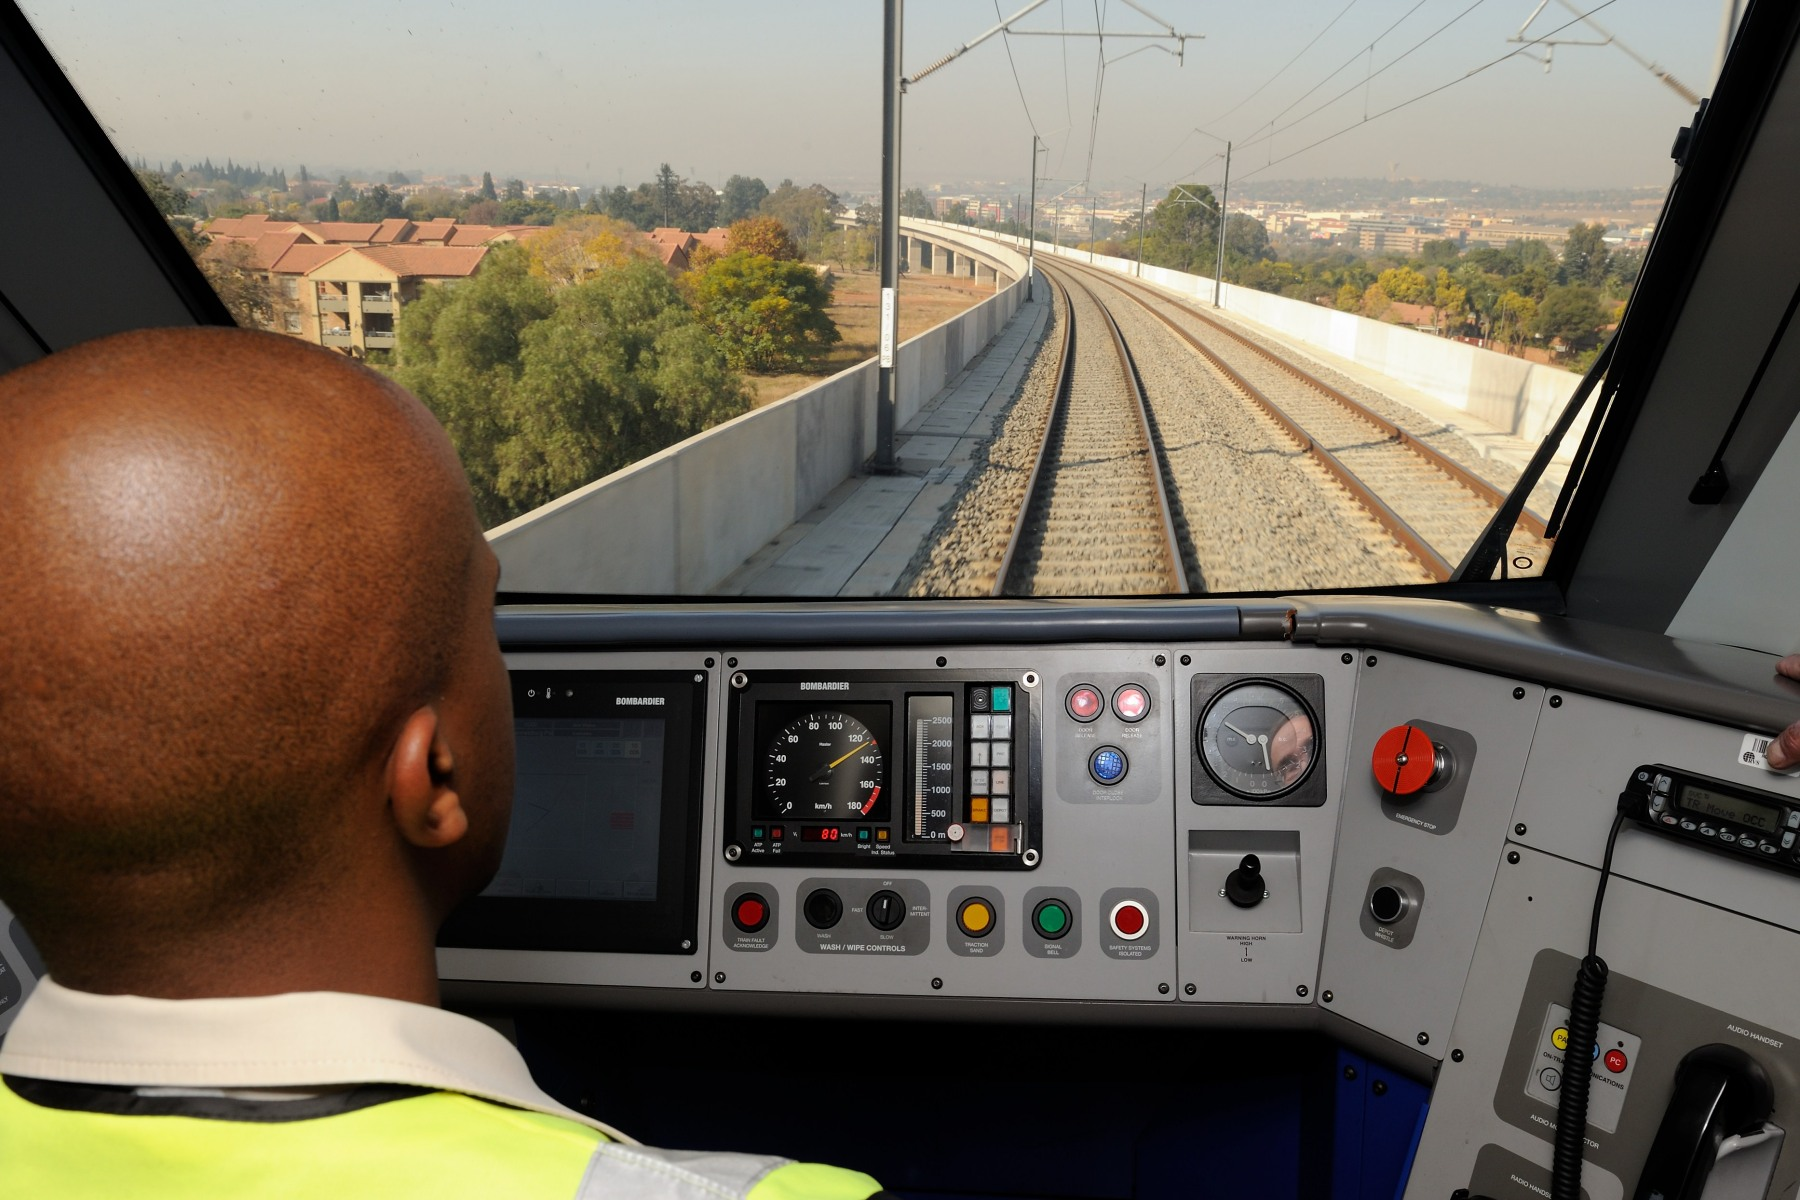 Bombardier, as part of the Bombela Consortium, is the builder of this high-speed commuter rail service that travels between the central business districts of Johannesburg and Pretoria.